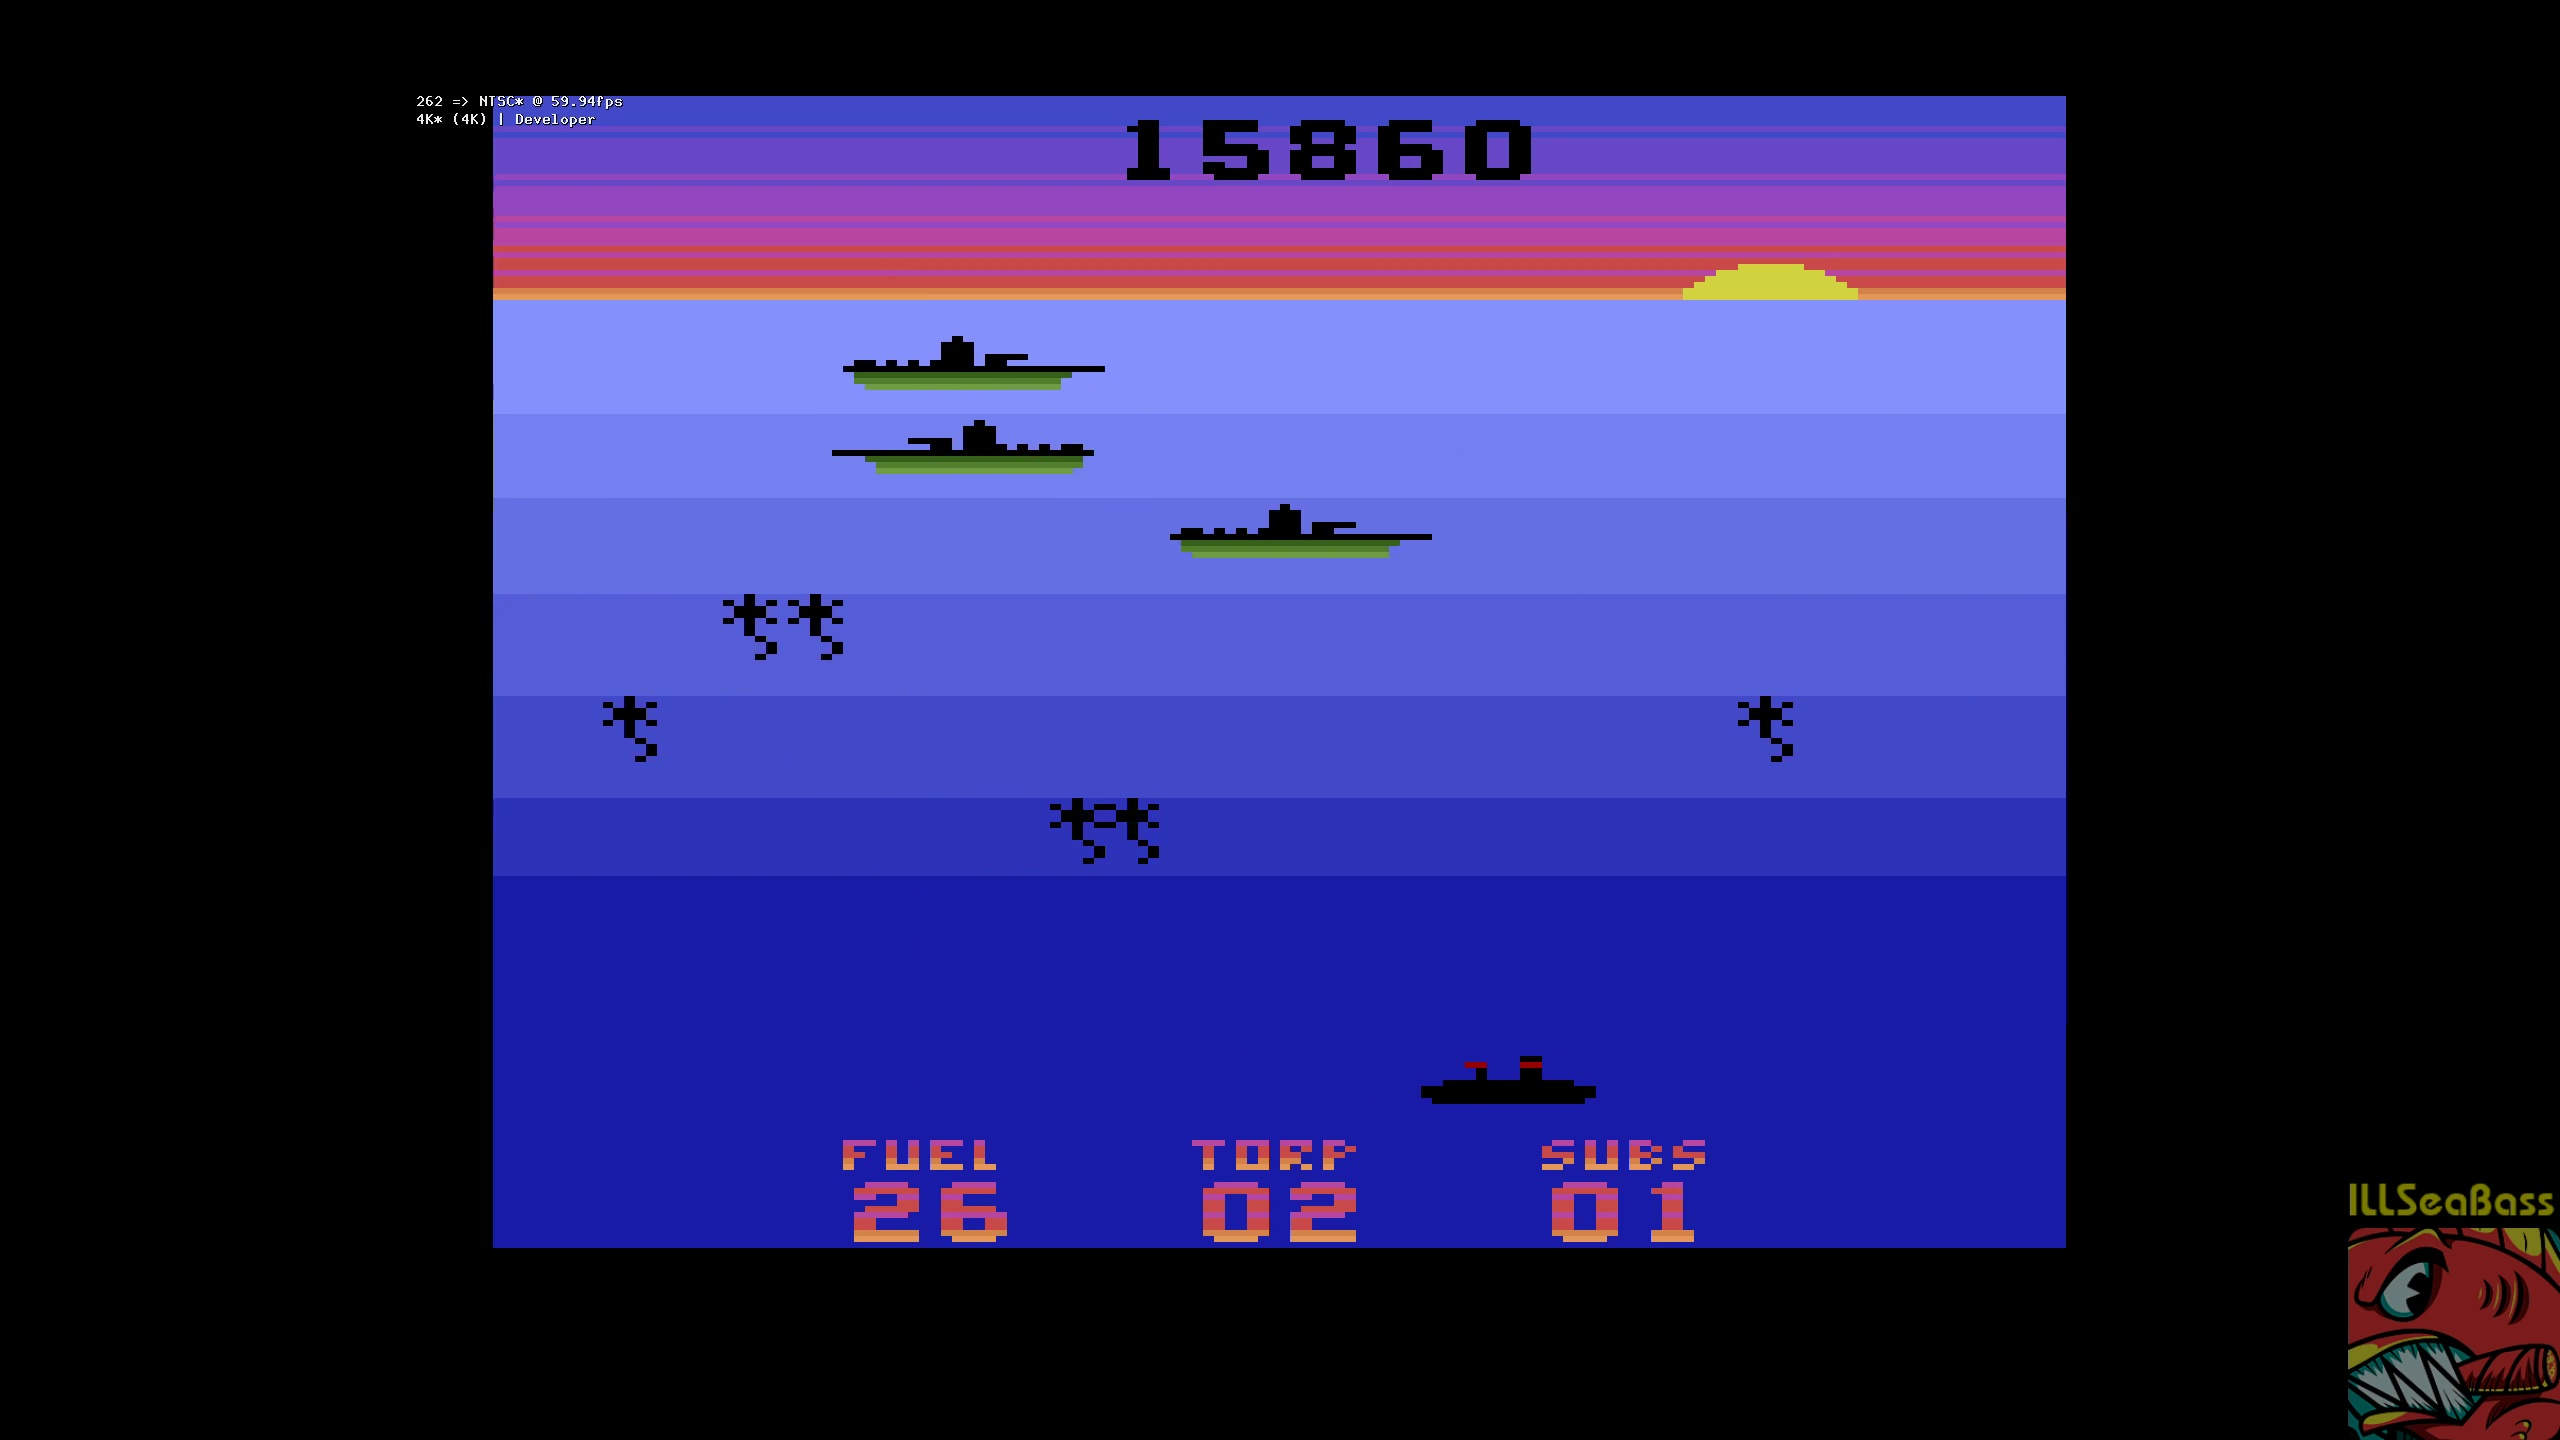 ILLSeaBass: Seawolf (Atari 2600 Emulated Novice/B Mode) 15,860 points on 2018-05-18 00:07:15